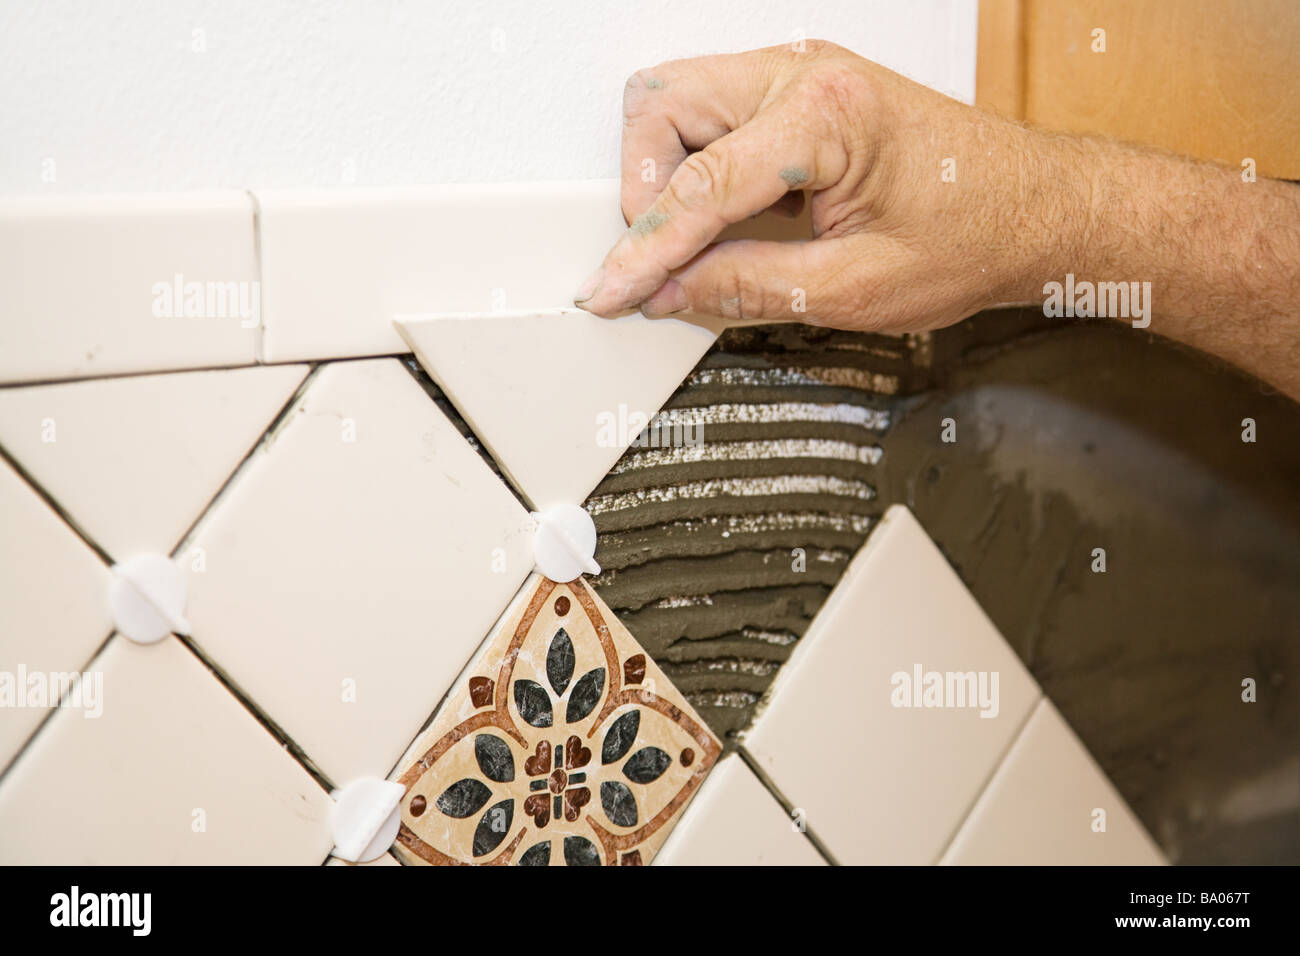 https www alamy com stock photo closeup of a tile setter s hand as he lays out tiles on the wall 23361852 html